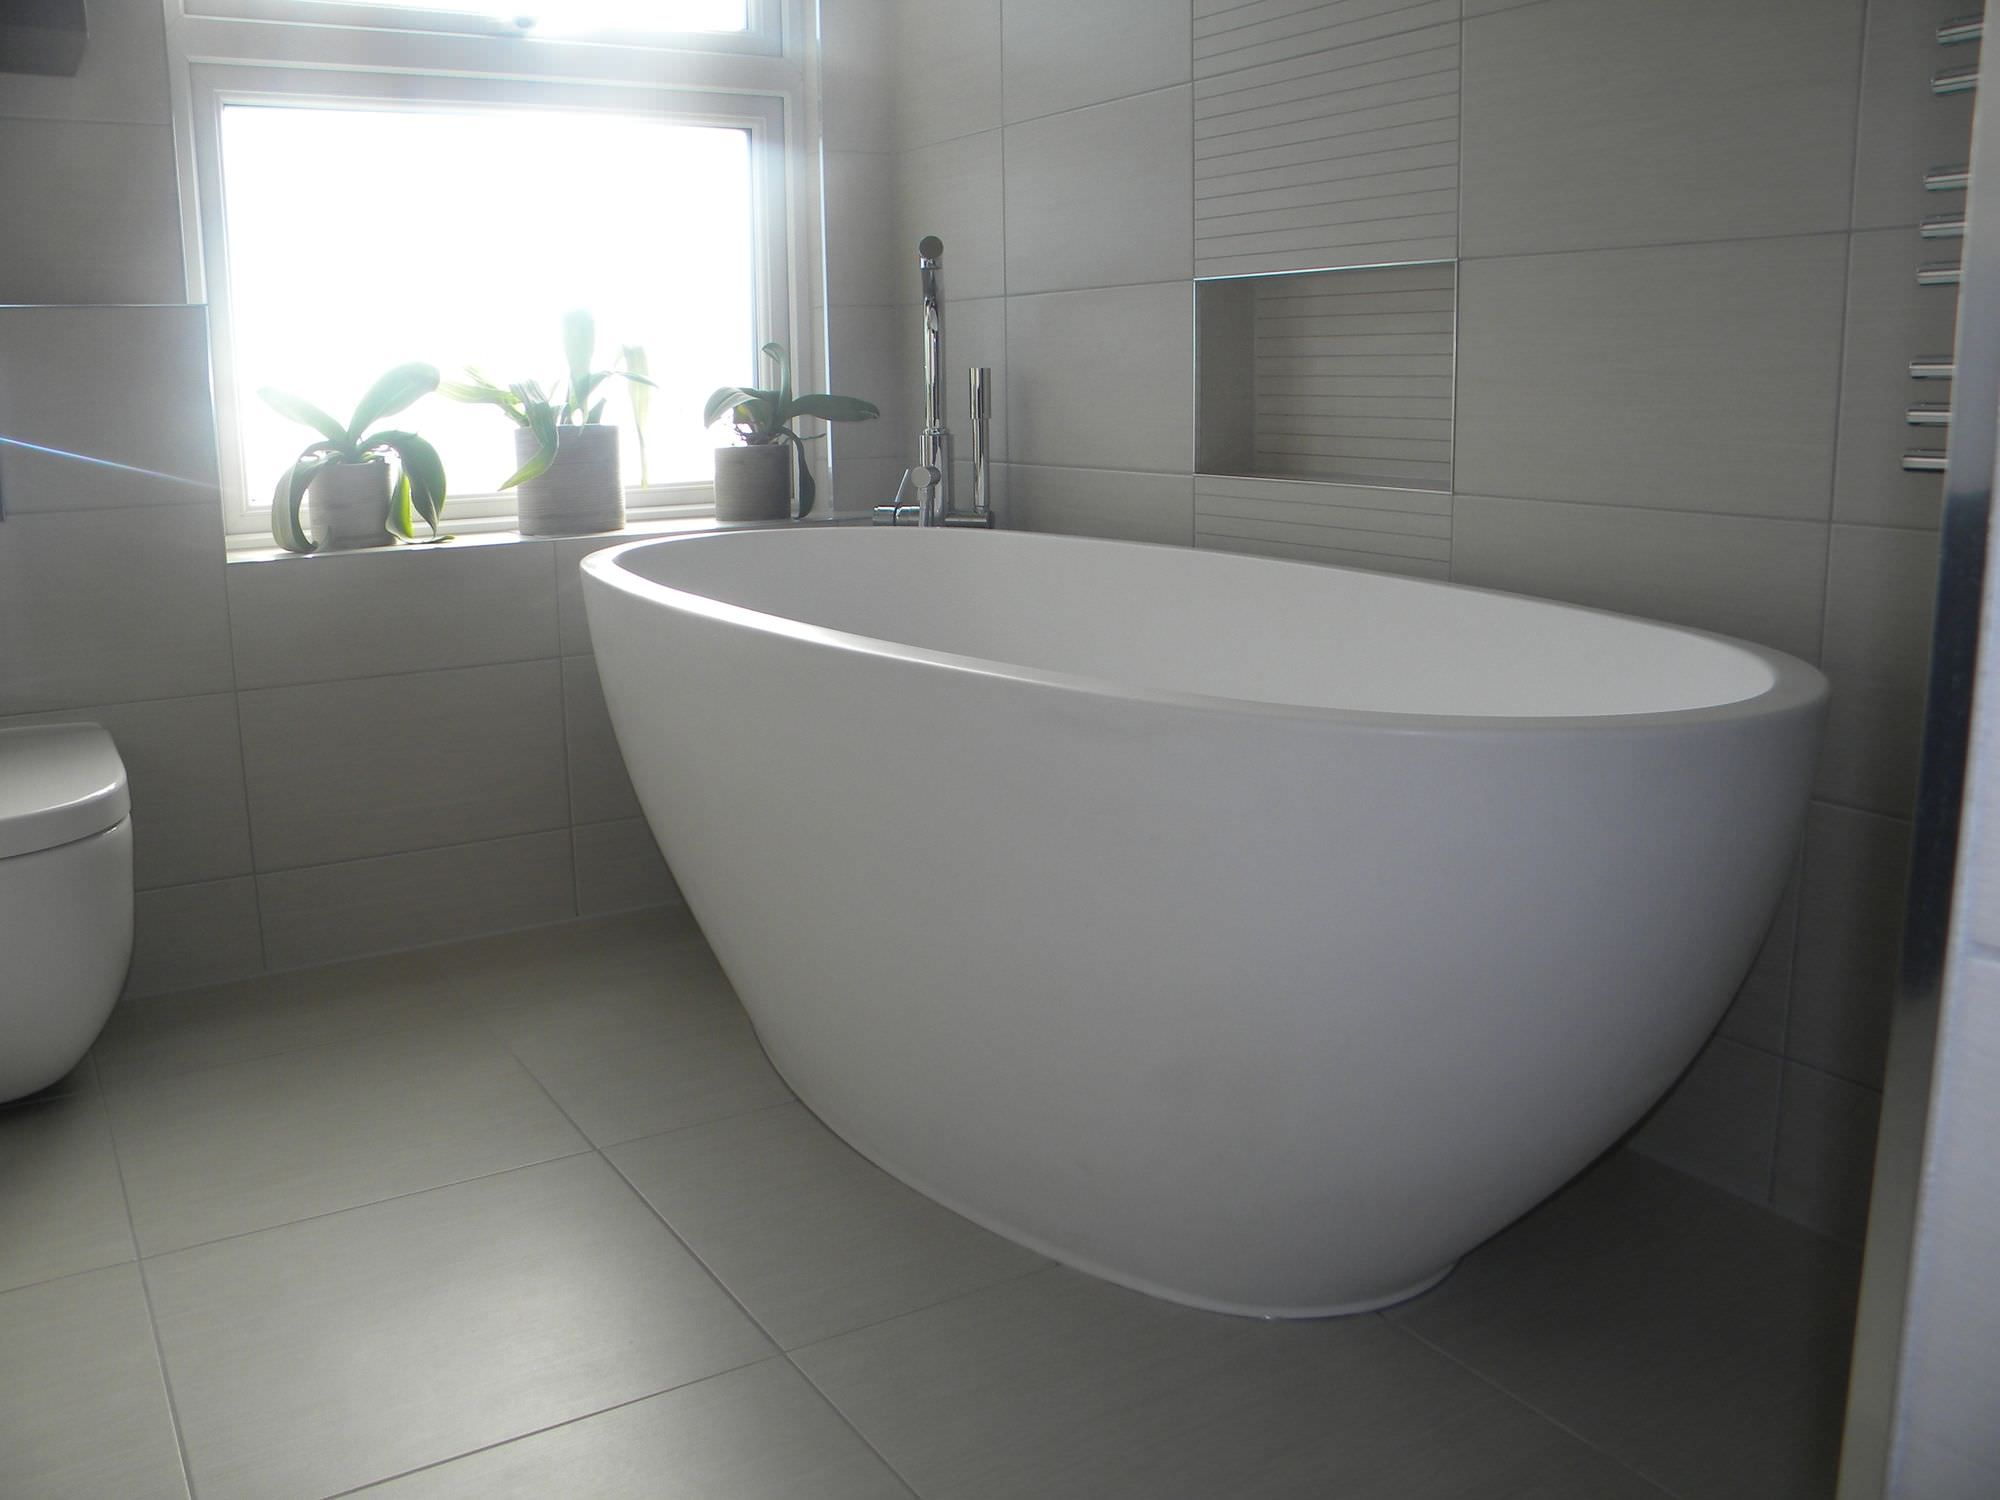 Incroyable Bathroom Small Bathroom Winsome Small Bathroom Bathtub Ideas Small Bathtub  Bathtubs And Showers For Small Bathrooms Unique Bathtubs For Small Bathroom